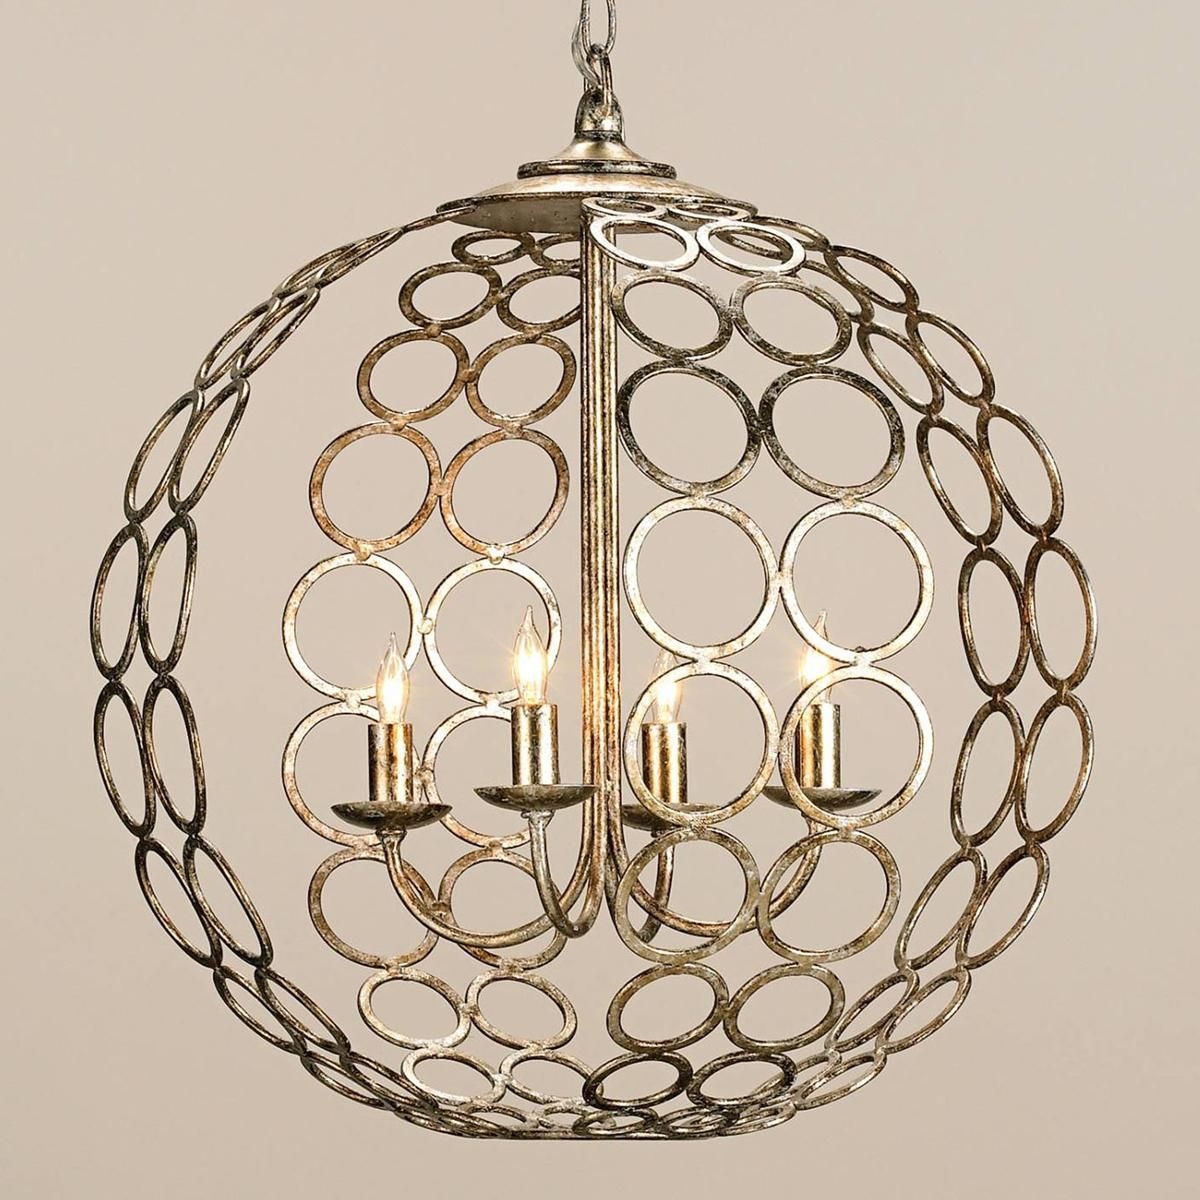 Circlet Sphere ChandelierCirclet Sphere Chandelier: This 4-light modern chandelier makes a visually appealing statement with its geometric inspired design and a beautiful silver and gold leaf finish.